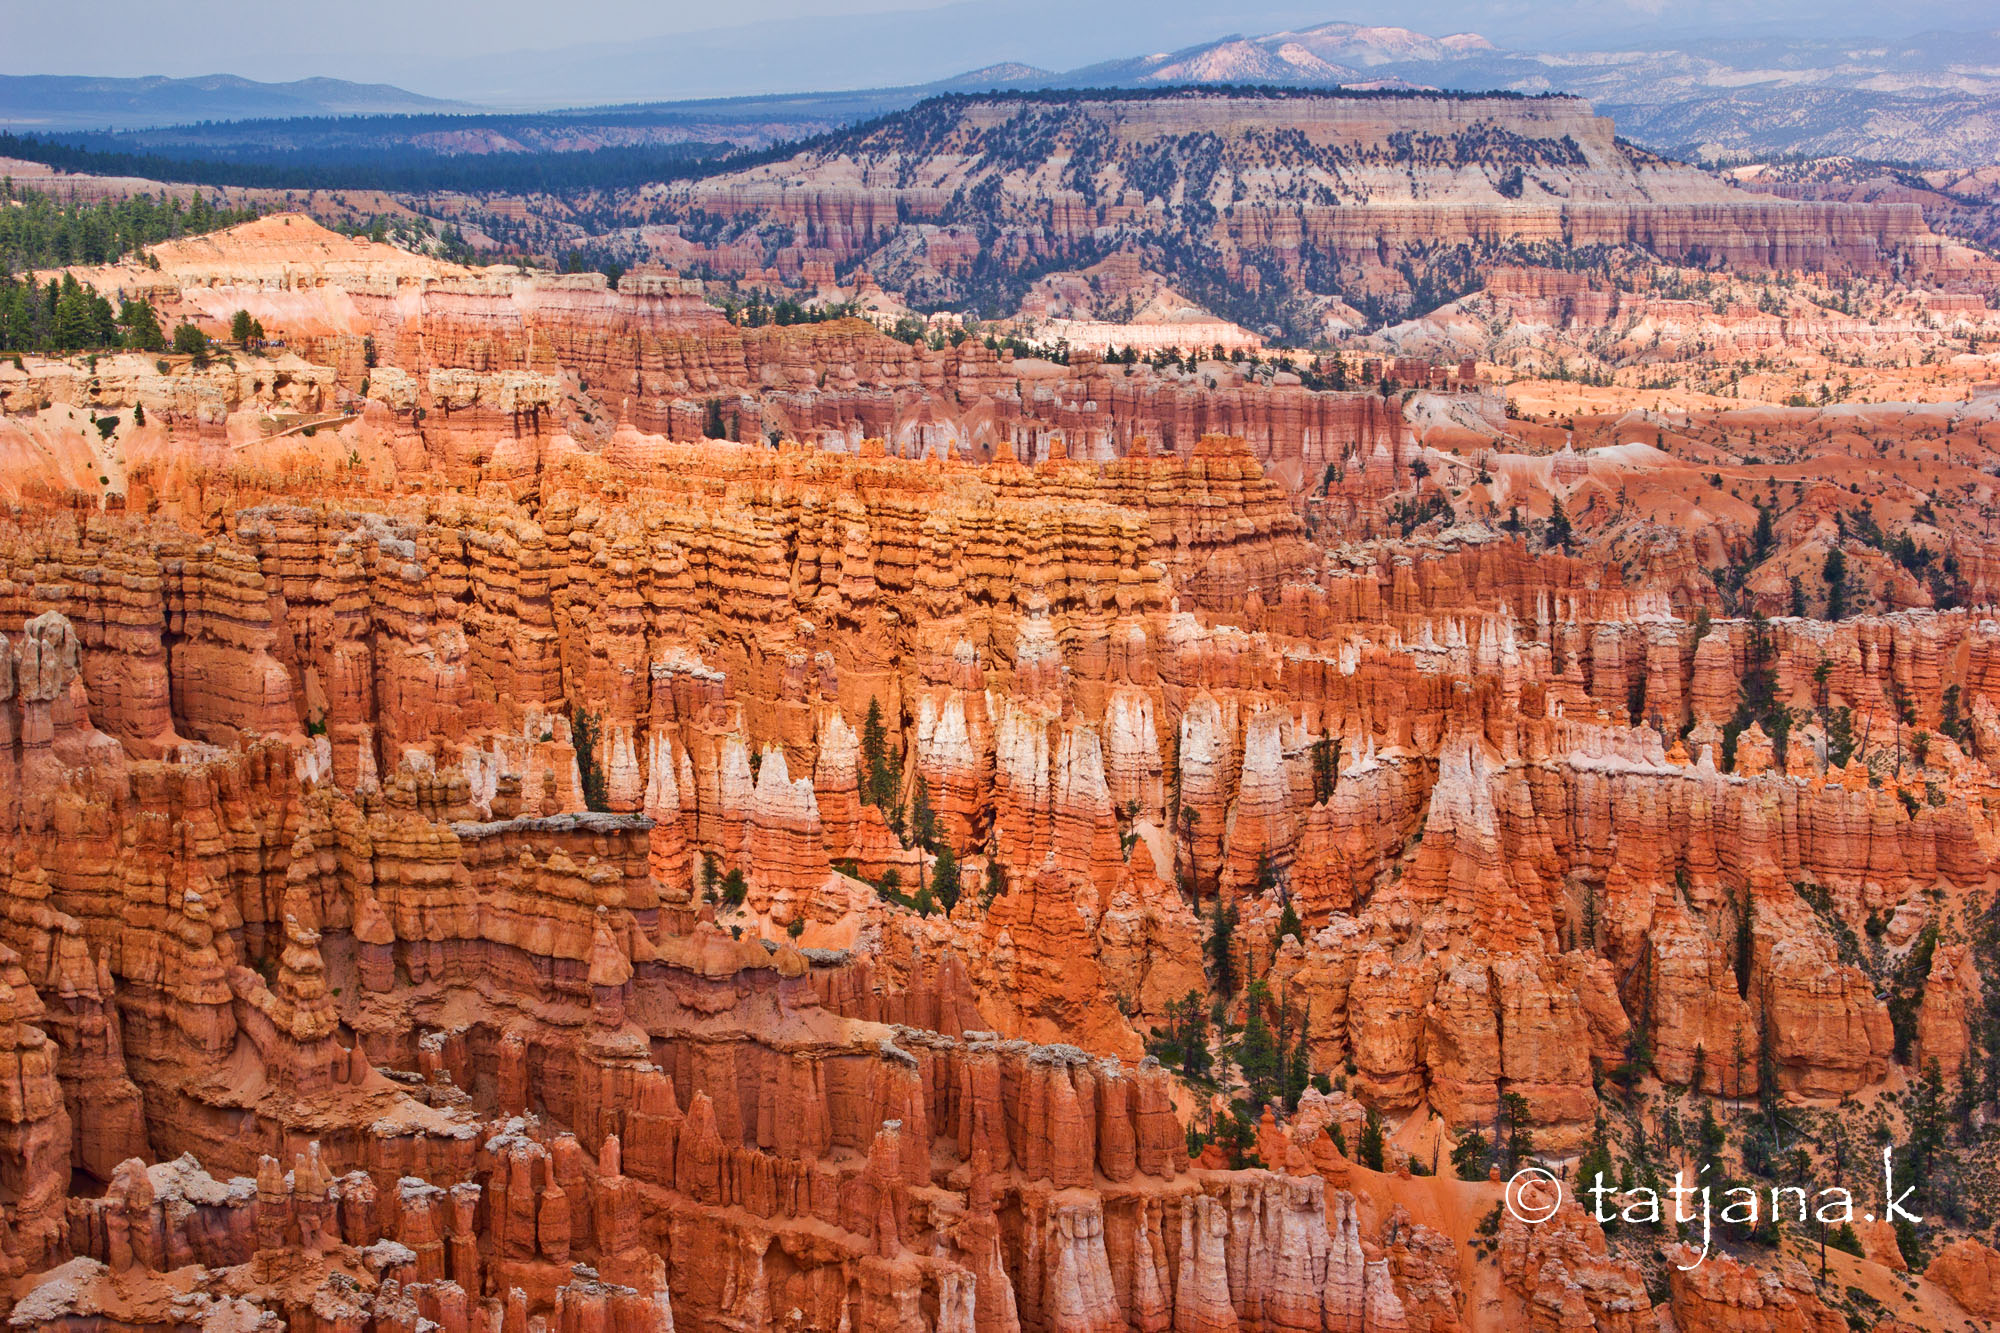 Day 6: Bryce Canyon which is not really a canyon